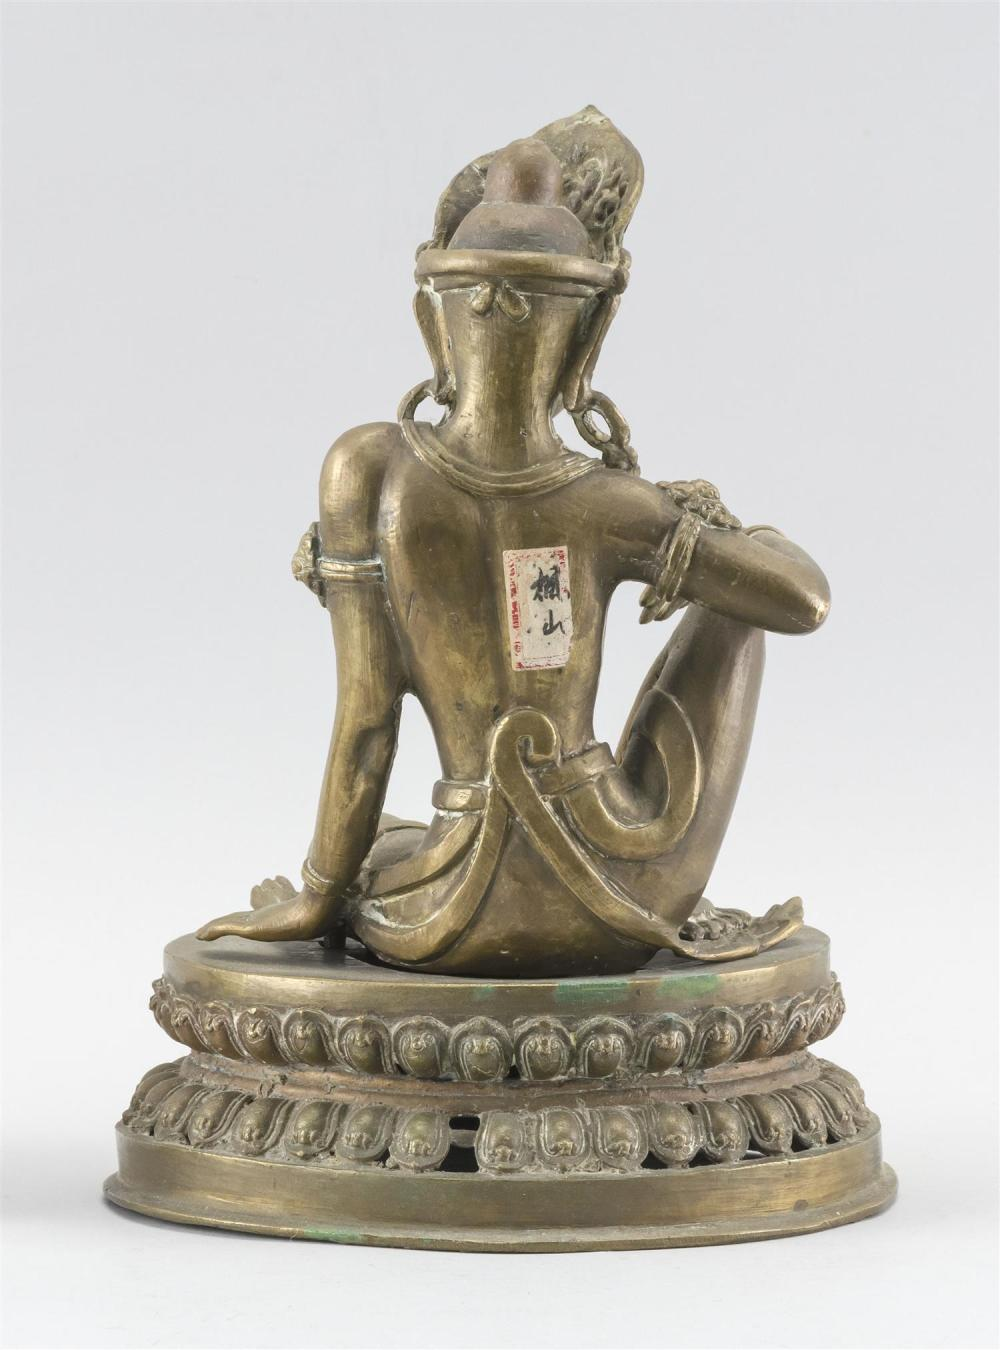 NEPALESE BRONZE FIGURE OF BUDDHA Seated on a lotus base. Paper label affixed to back. Height 10